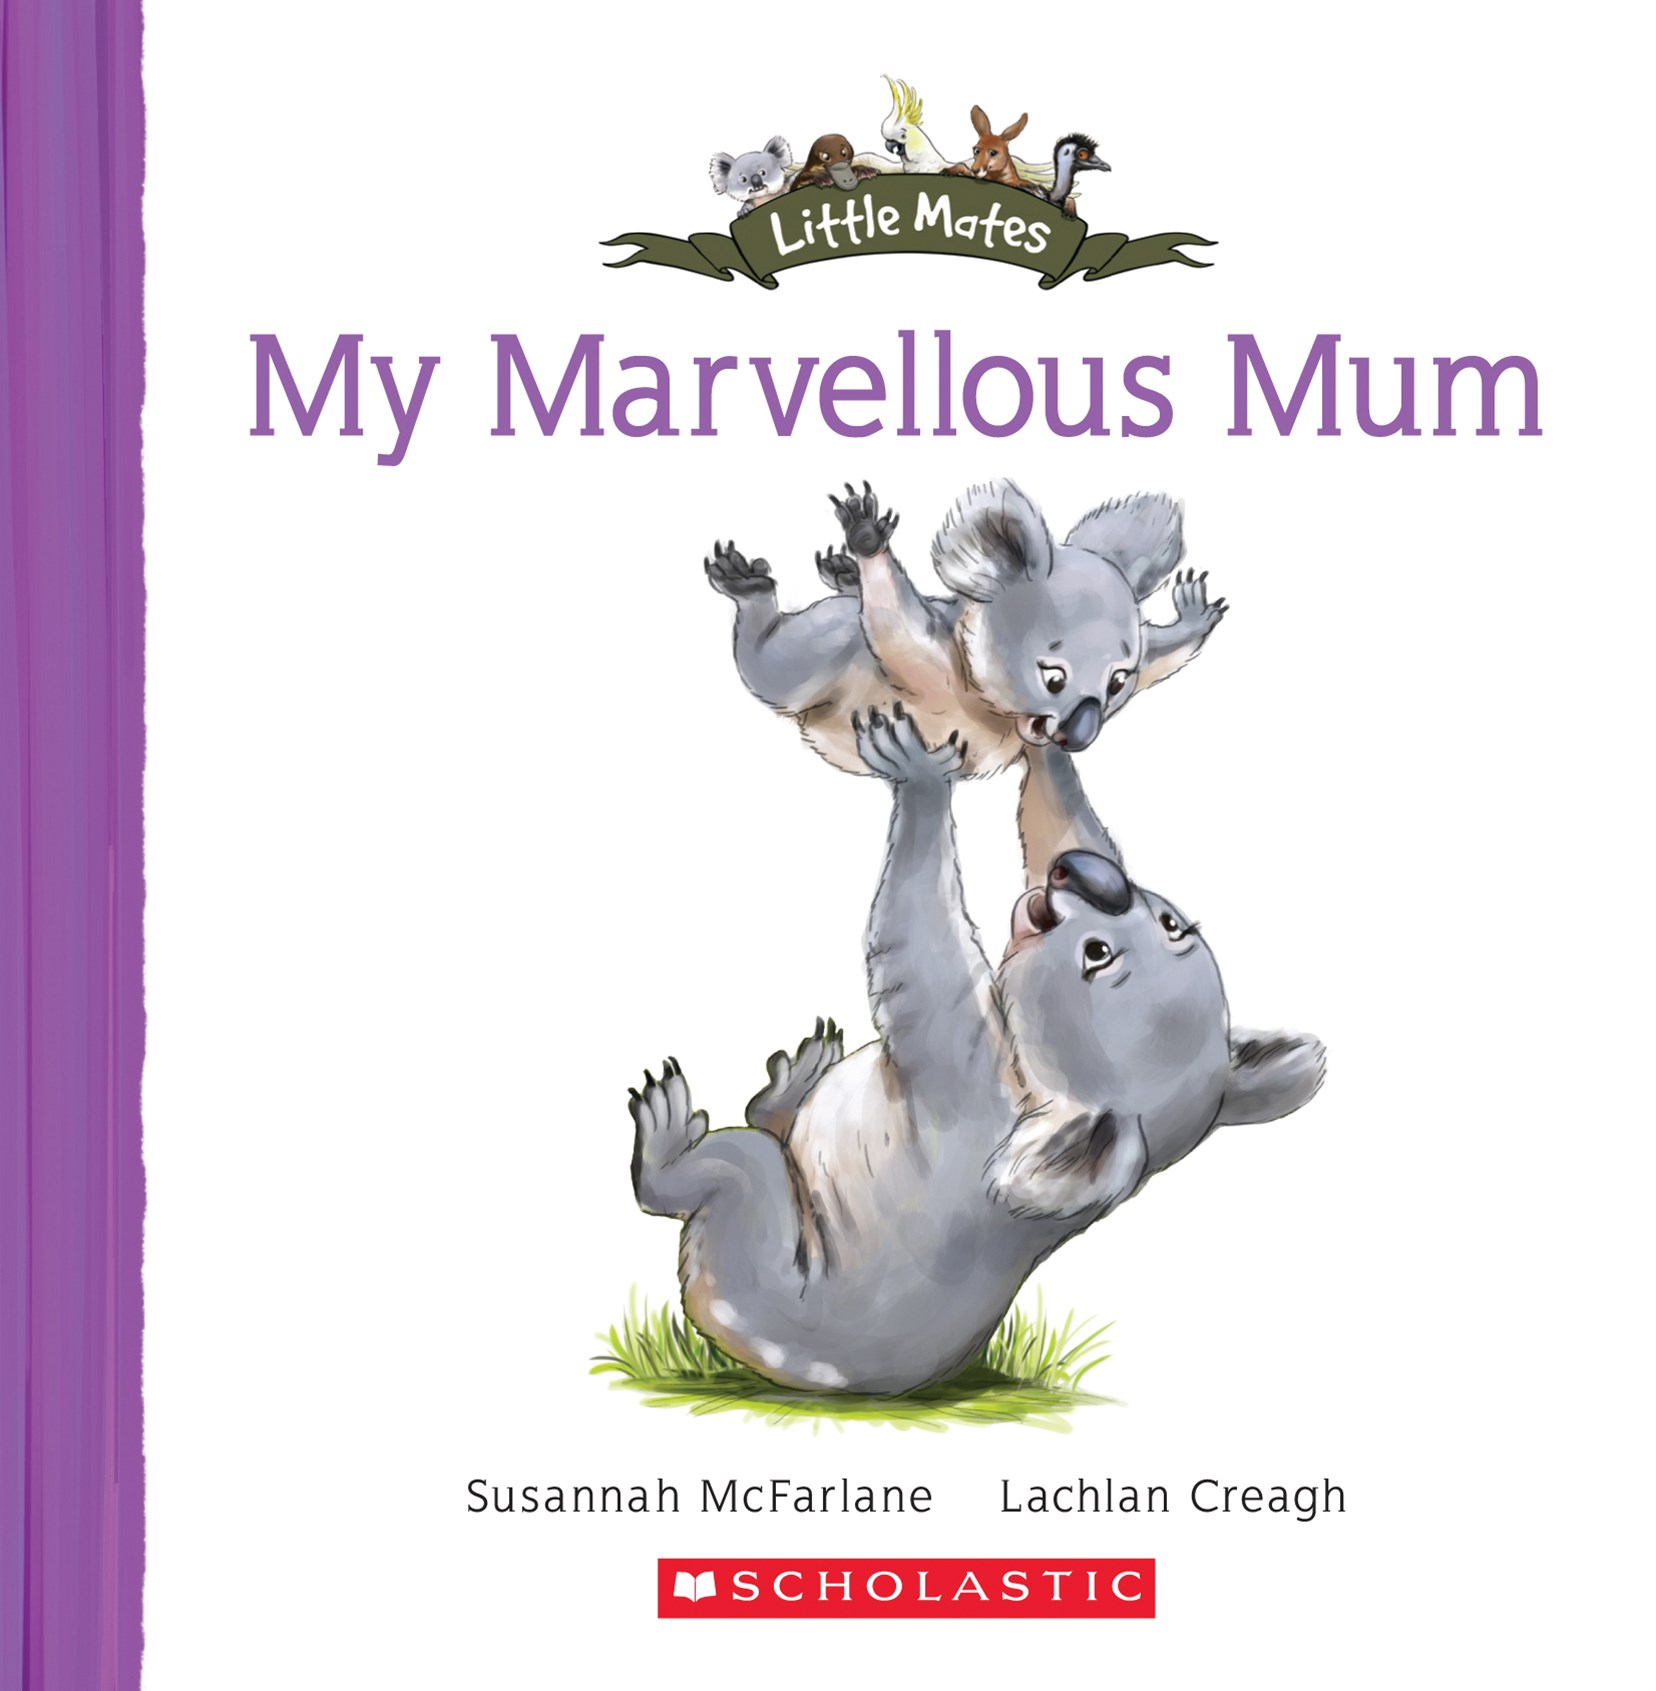 Little Mates: My Marvellous Mum